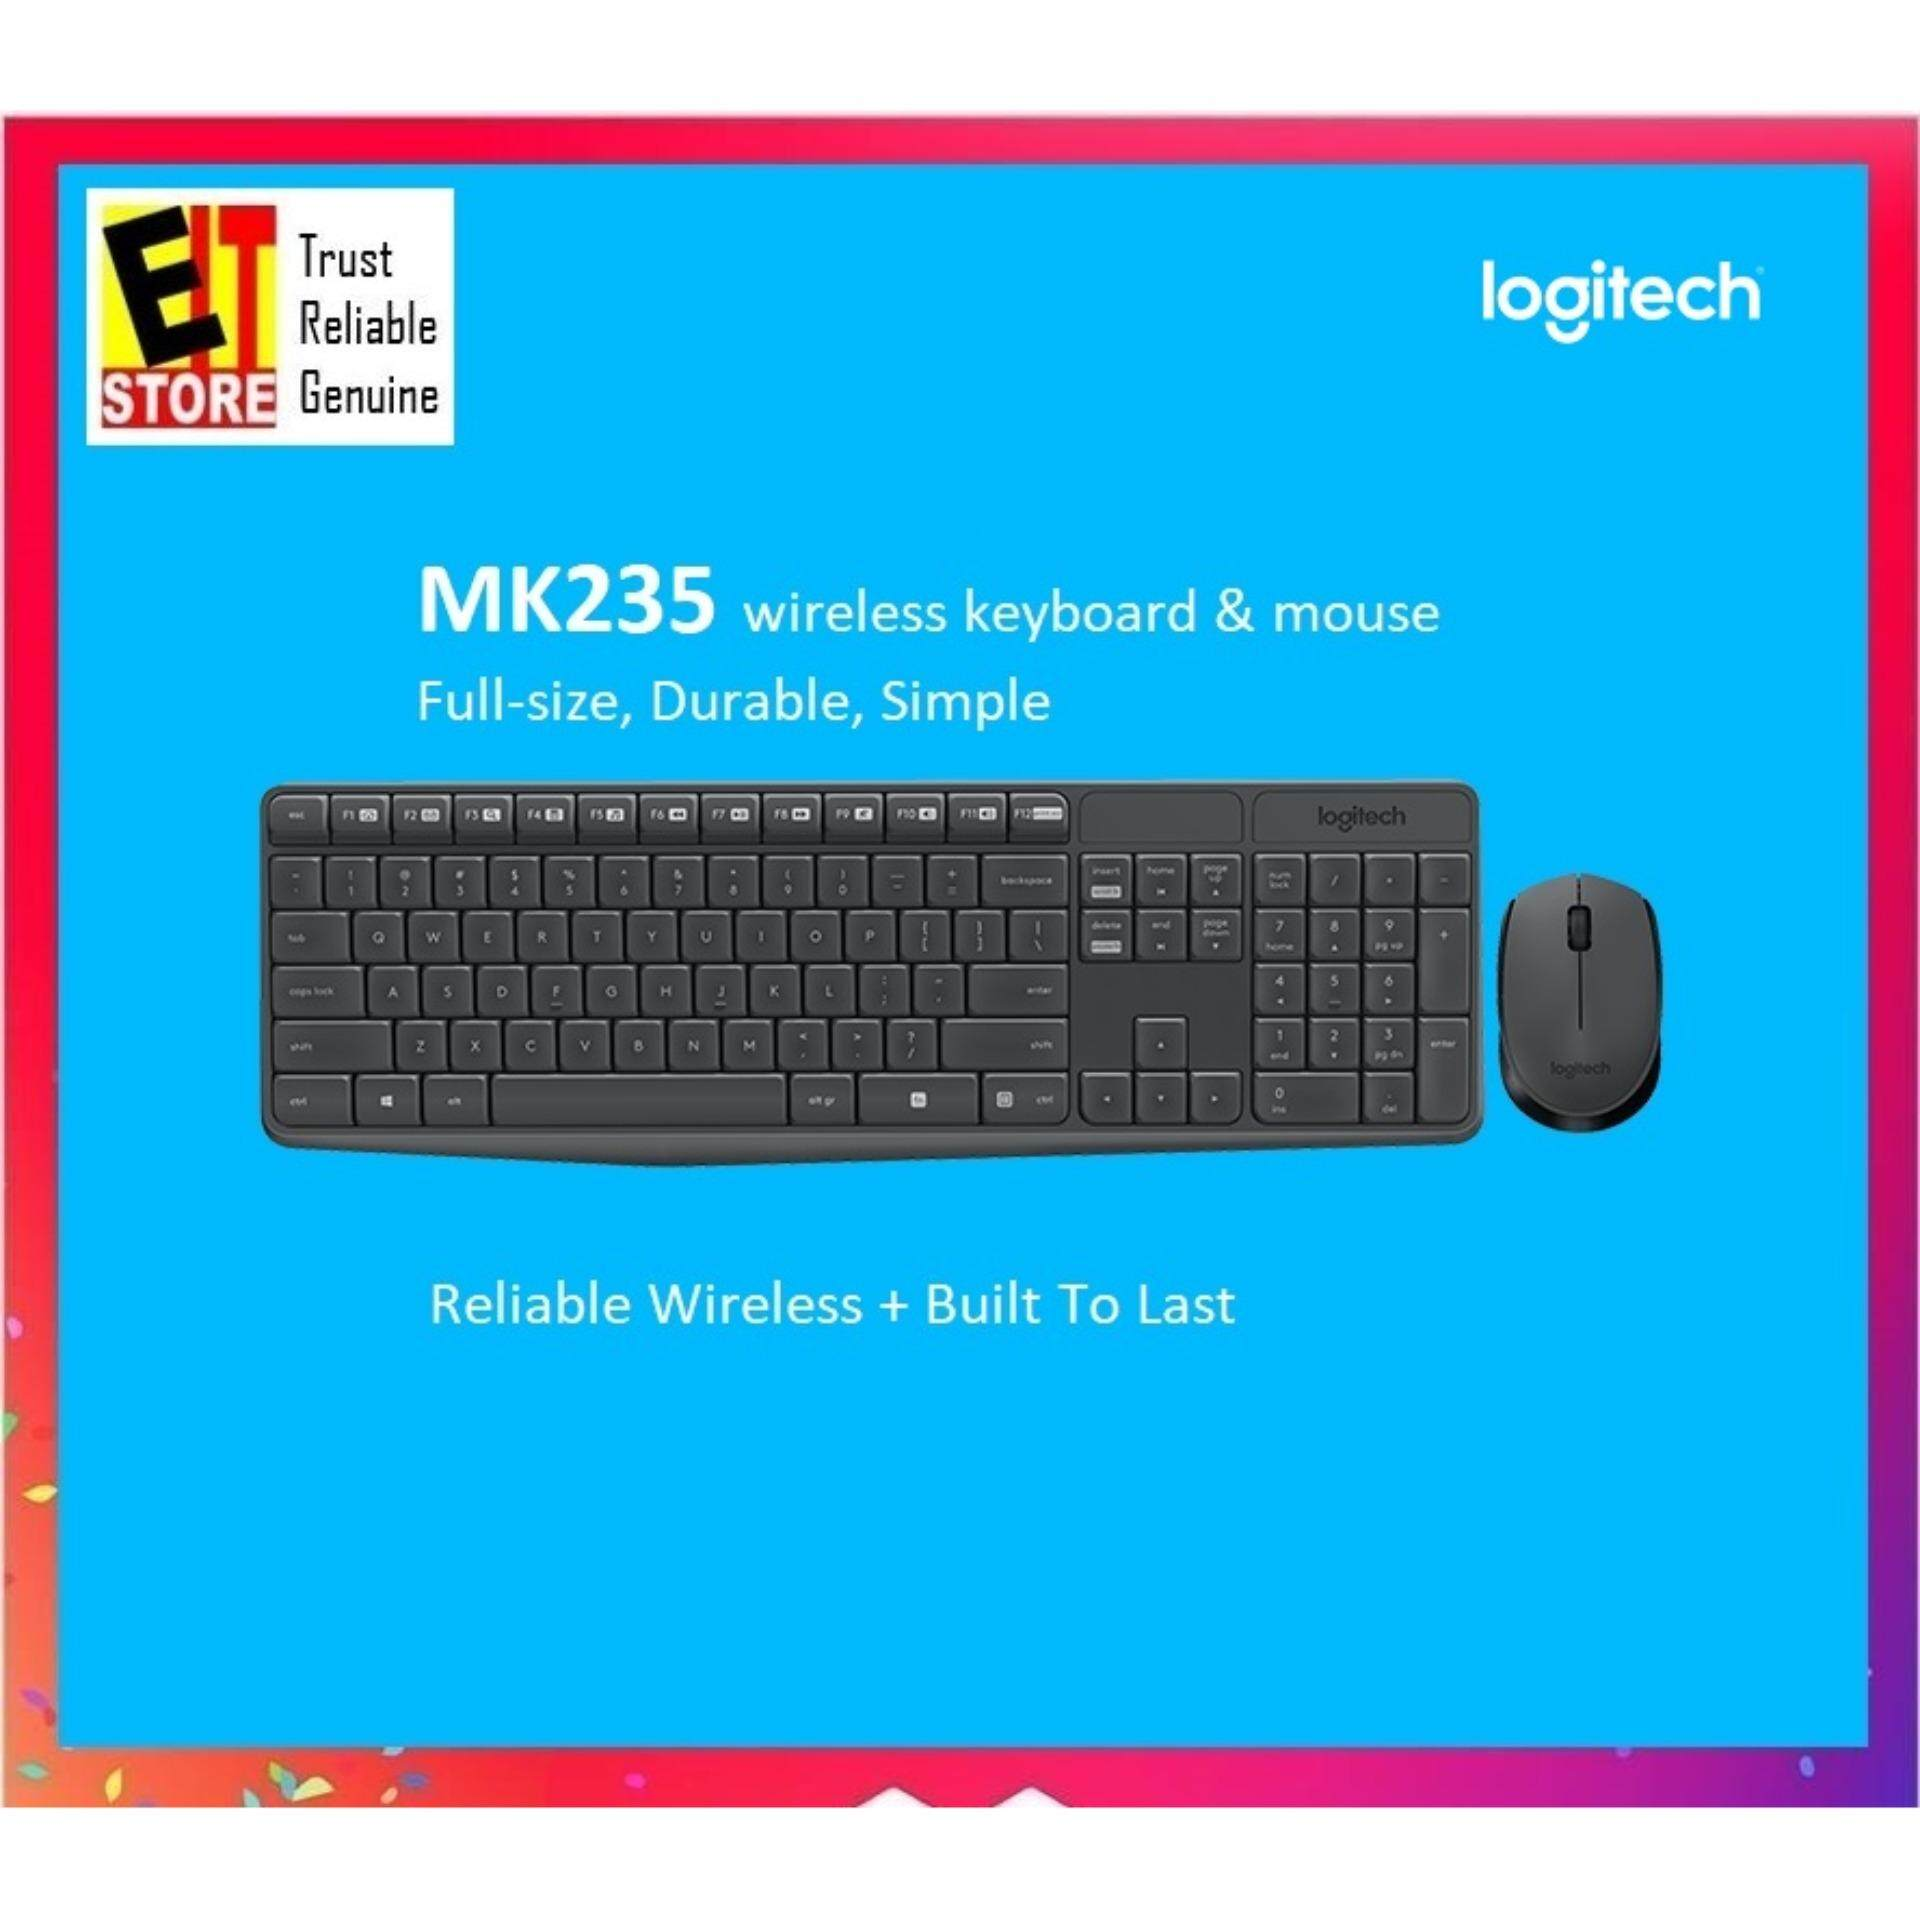 Logitech Mk235 Wireless Keyboard And Mouse By Eit Store.